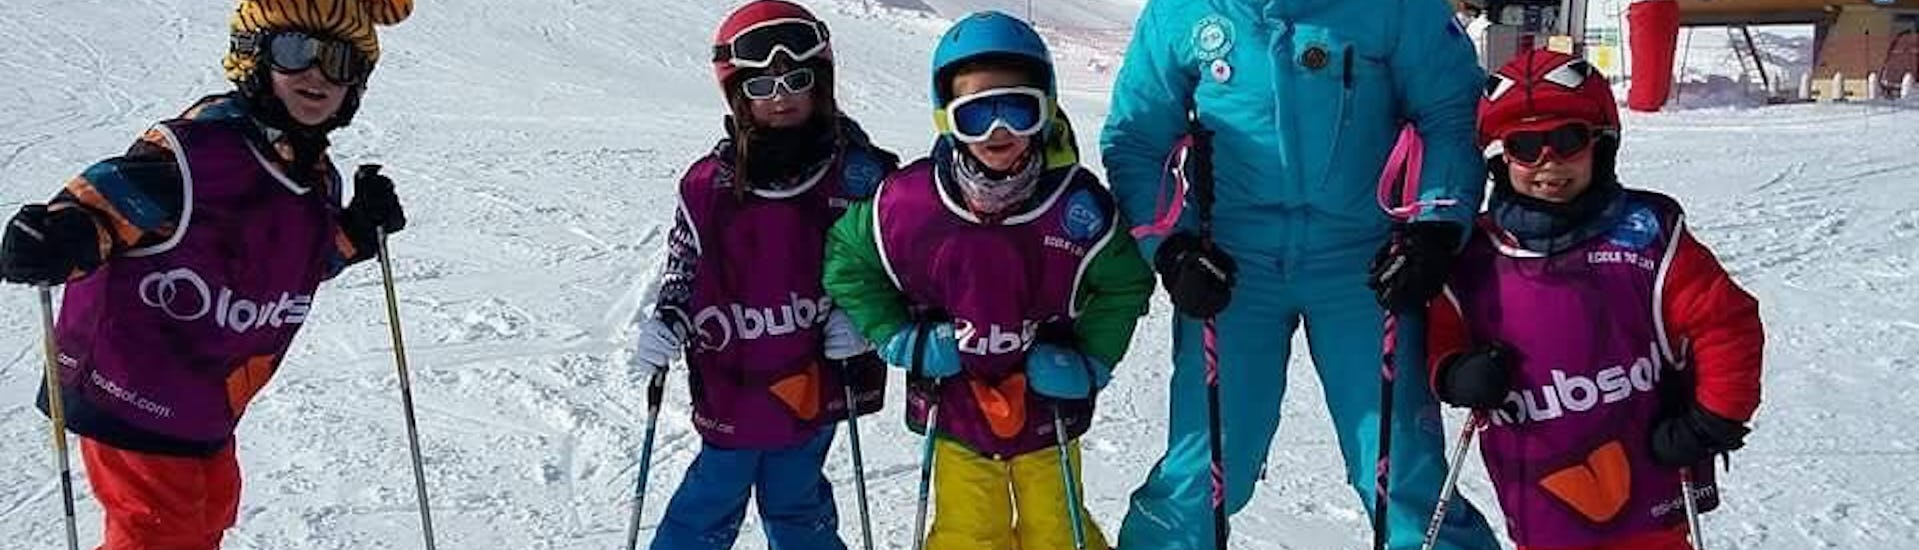 Ski Lessons for Kids (6-17 years) - Low Season